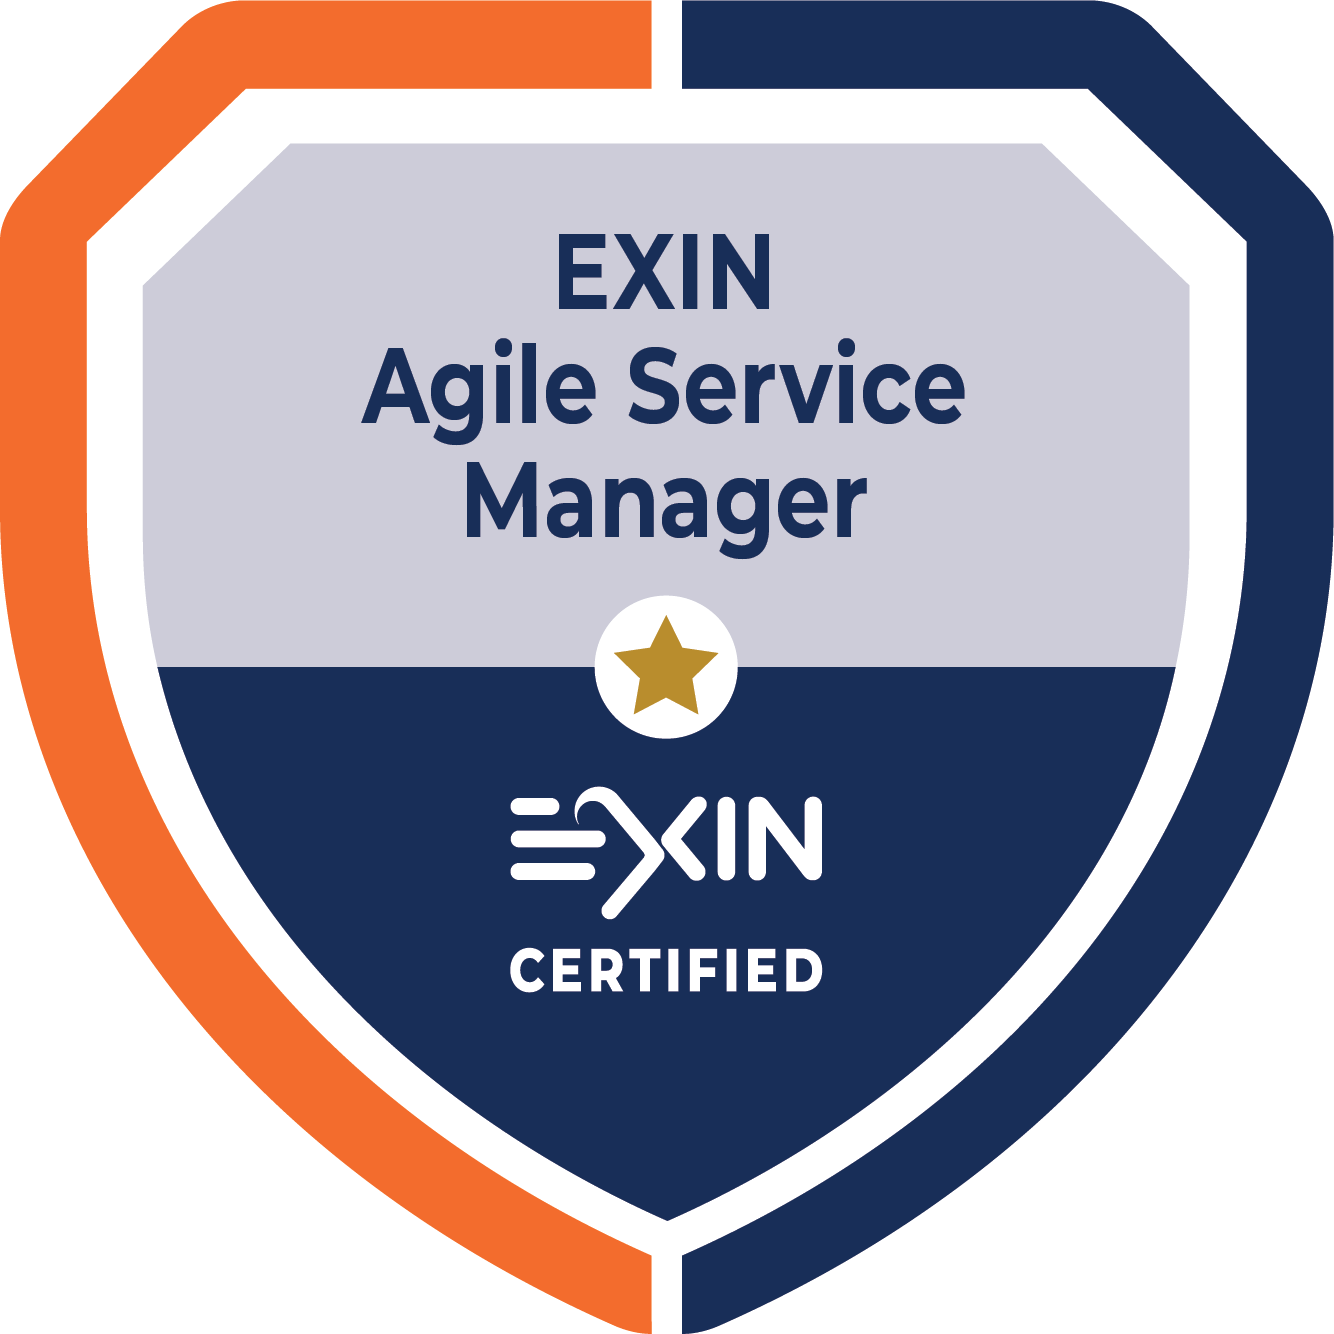 EXIN Agile Service Manager